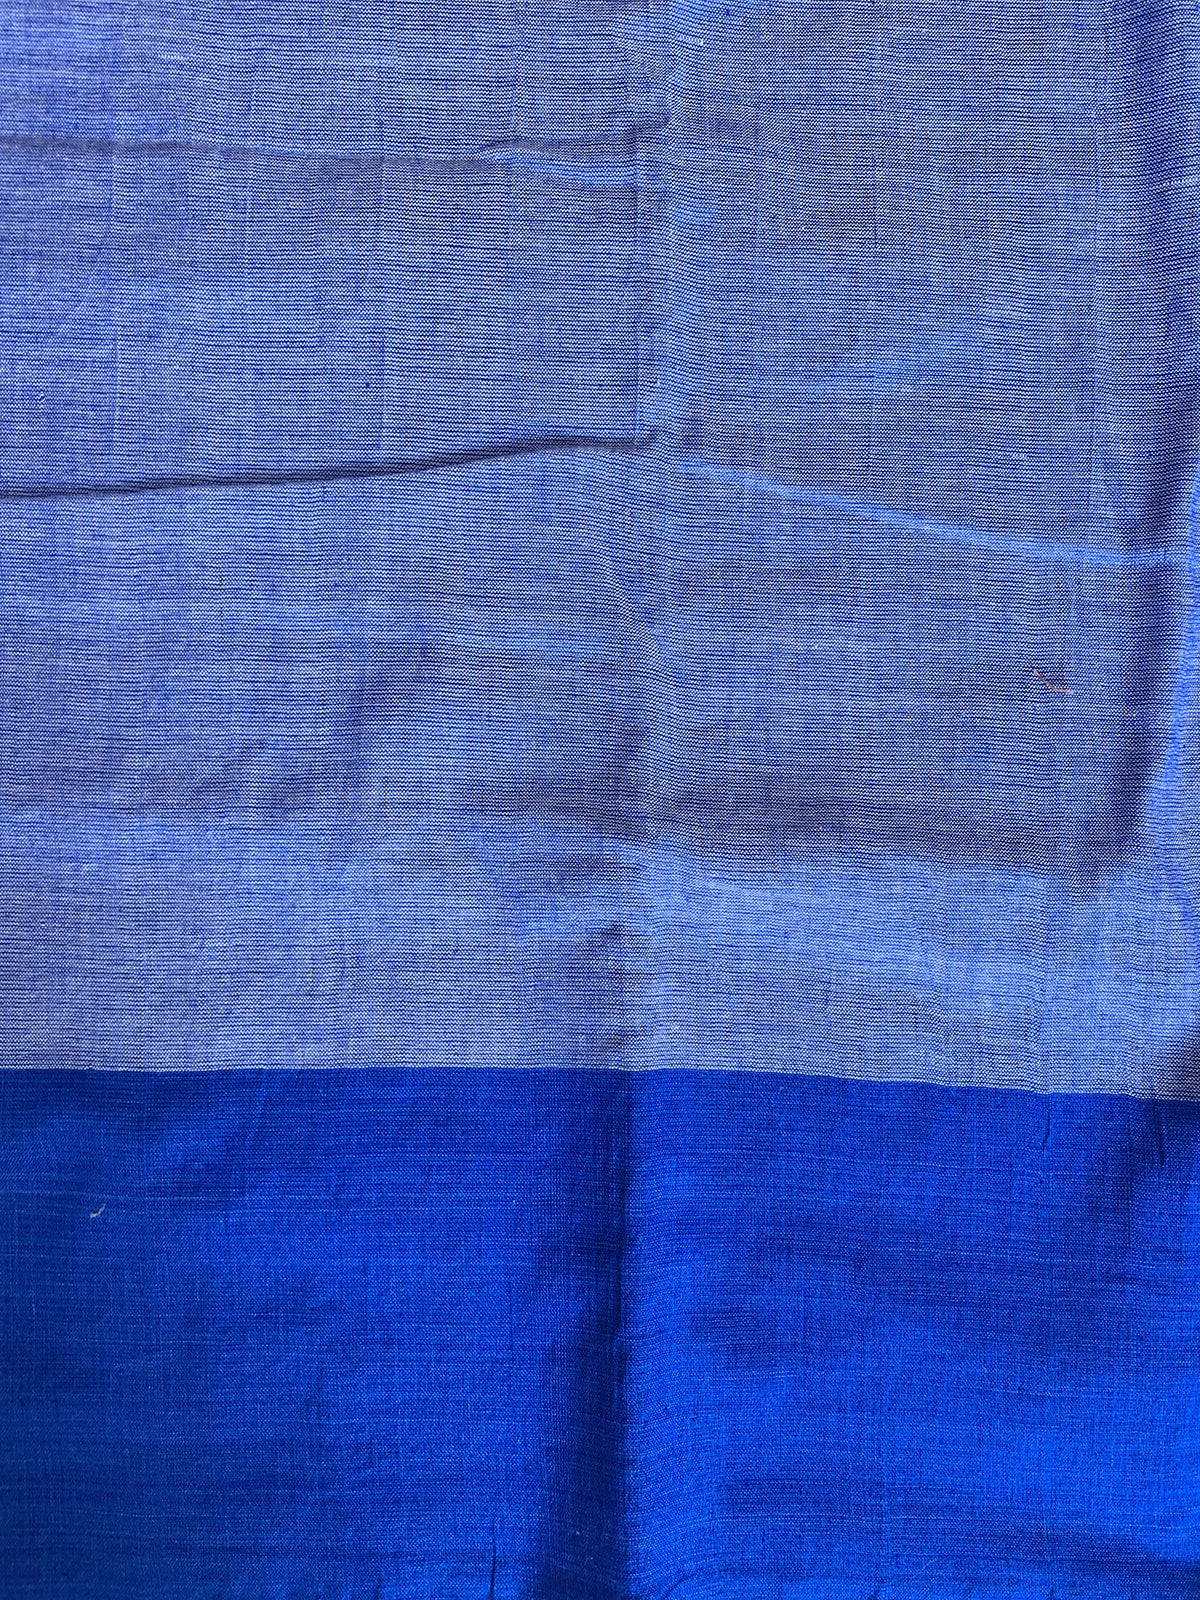 Handwoven Cotton white blue Ikat design saree